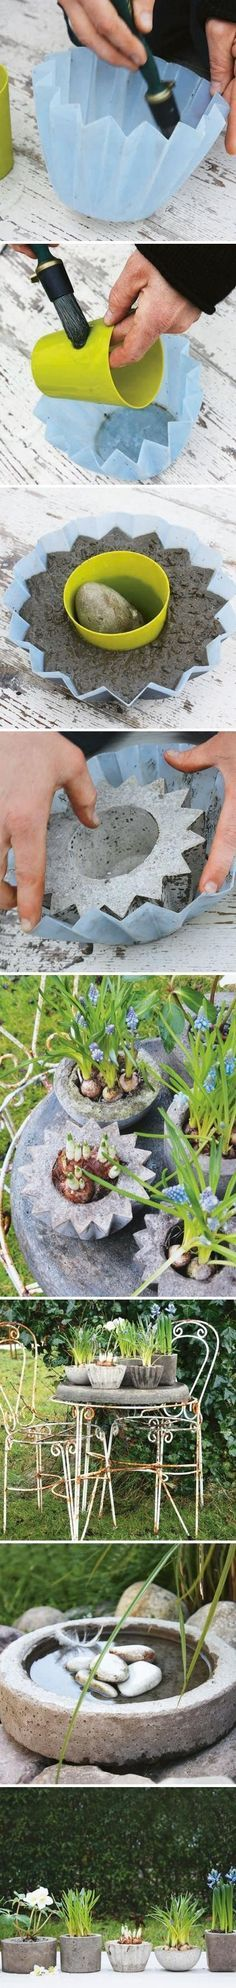 gartendeko zum selbermachen anleitung beton blument pfe k bel diy garten pinterest garten. Black Bedroom Furniture Sets. Home Design Ideas